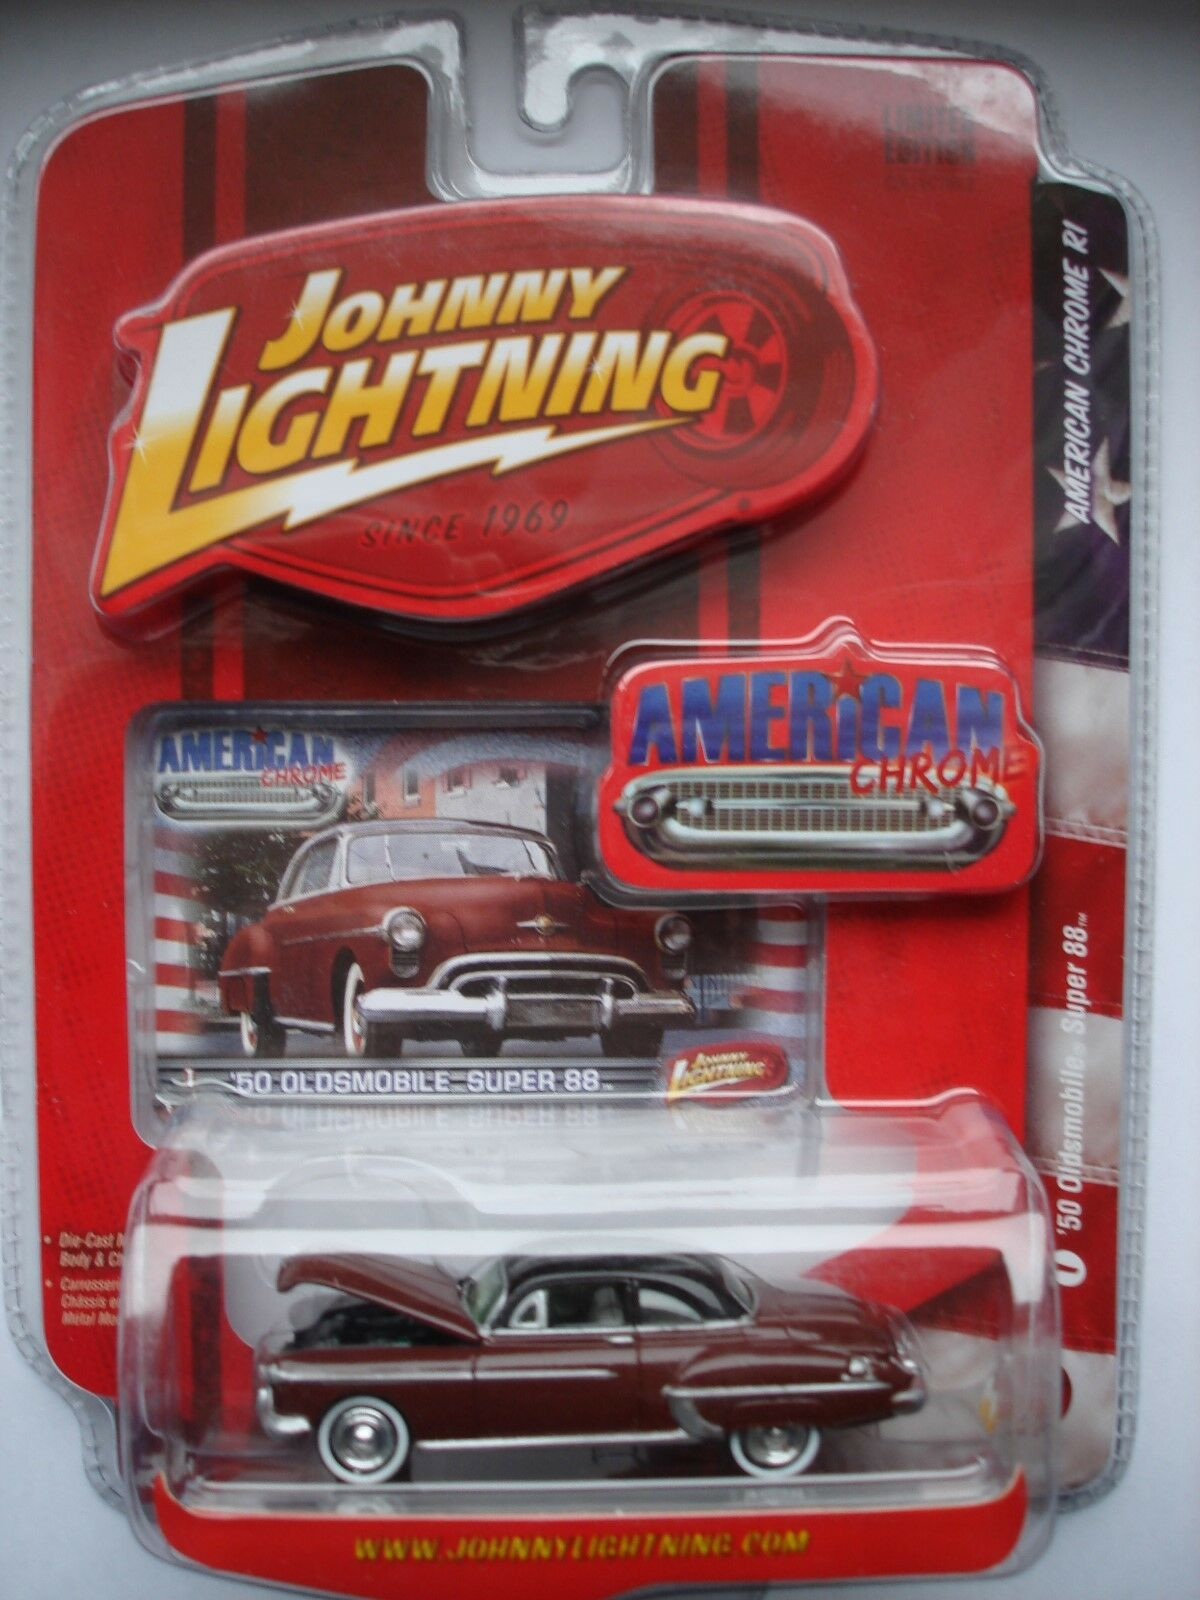 '50 Oldsmobile Super 88 - JOHNNY LIGHTNING AMERICAN CHROME R1 -OVP-  | Online Store